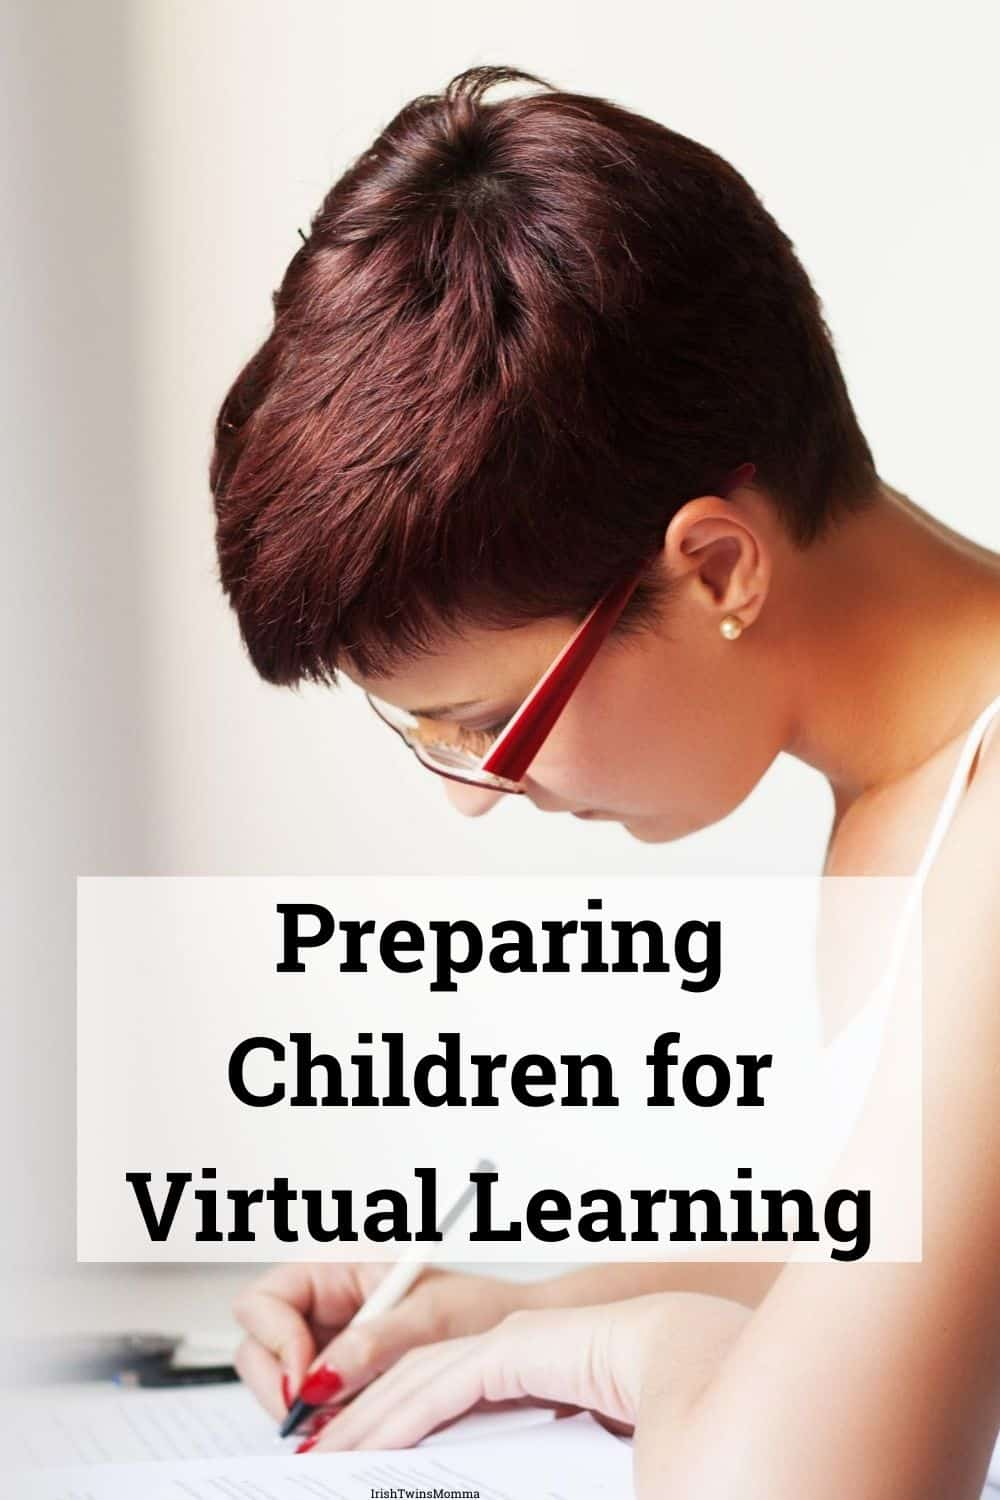 Children for virtual learning